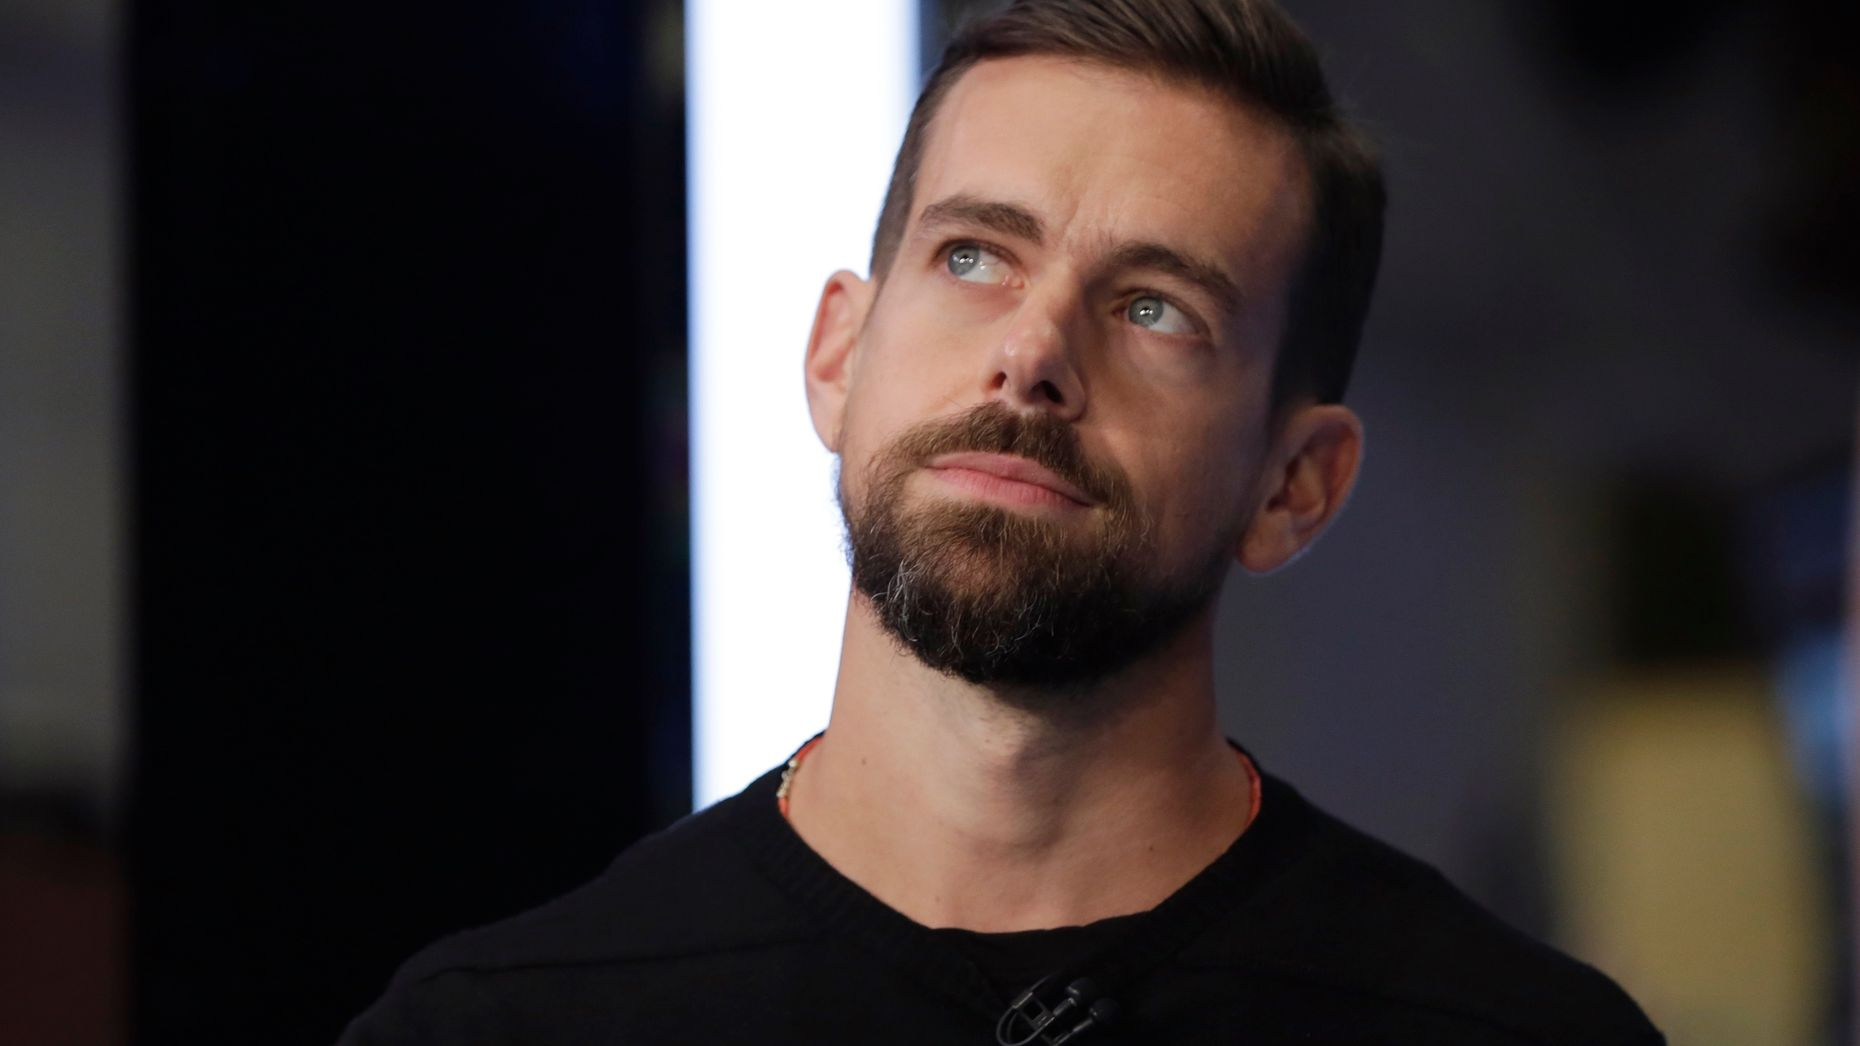 Jack Dorsey. Photo by AP.